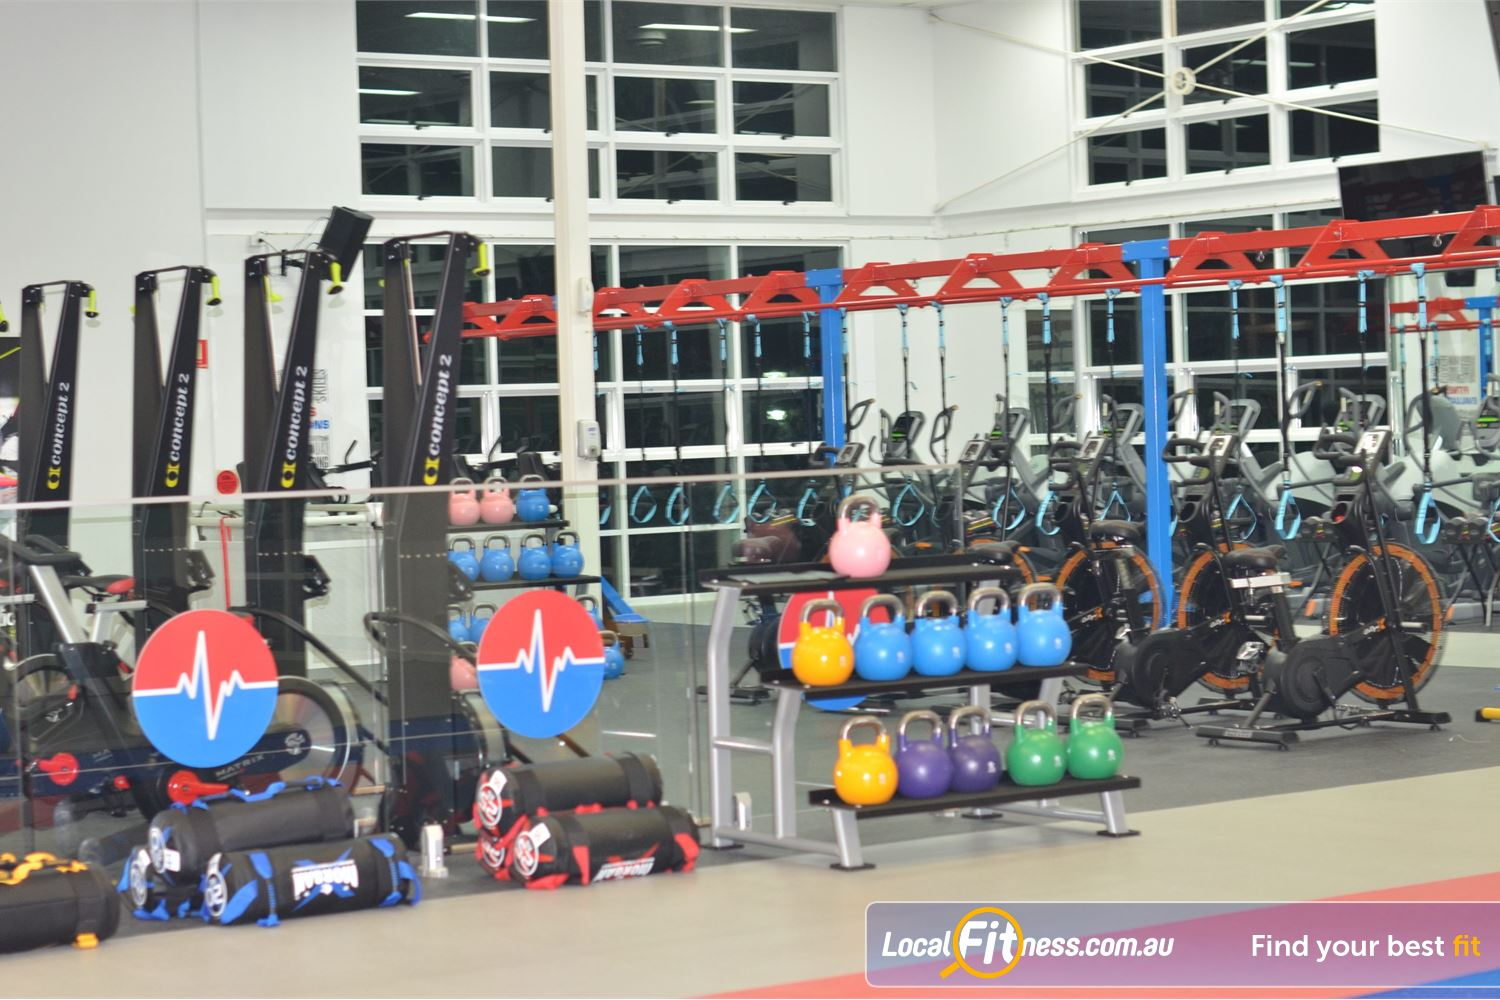 North Ryde Fitness & Aquatic North Ryde The dedicated North Ryde HIIT gym.